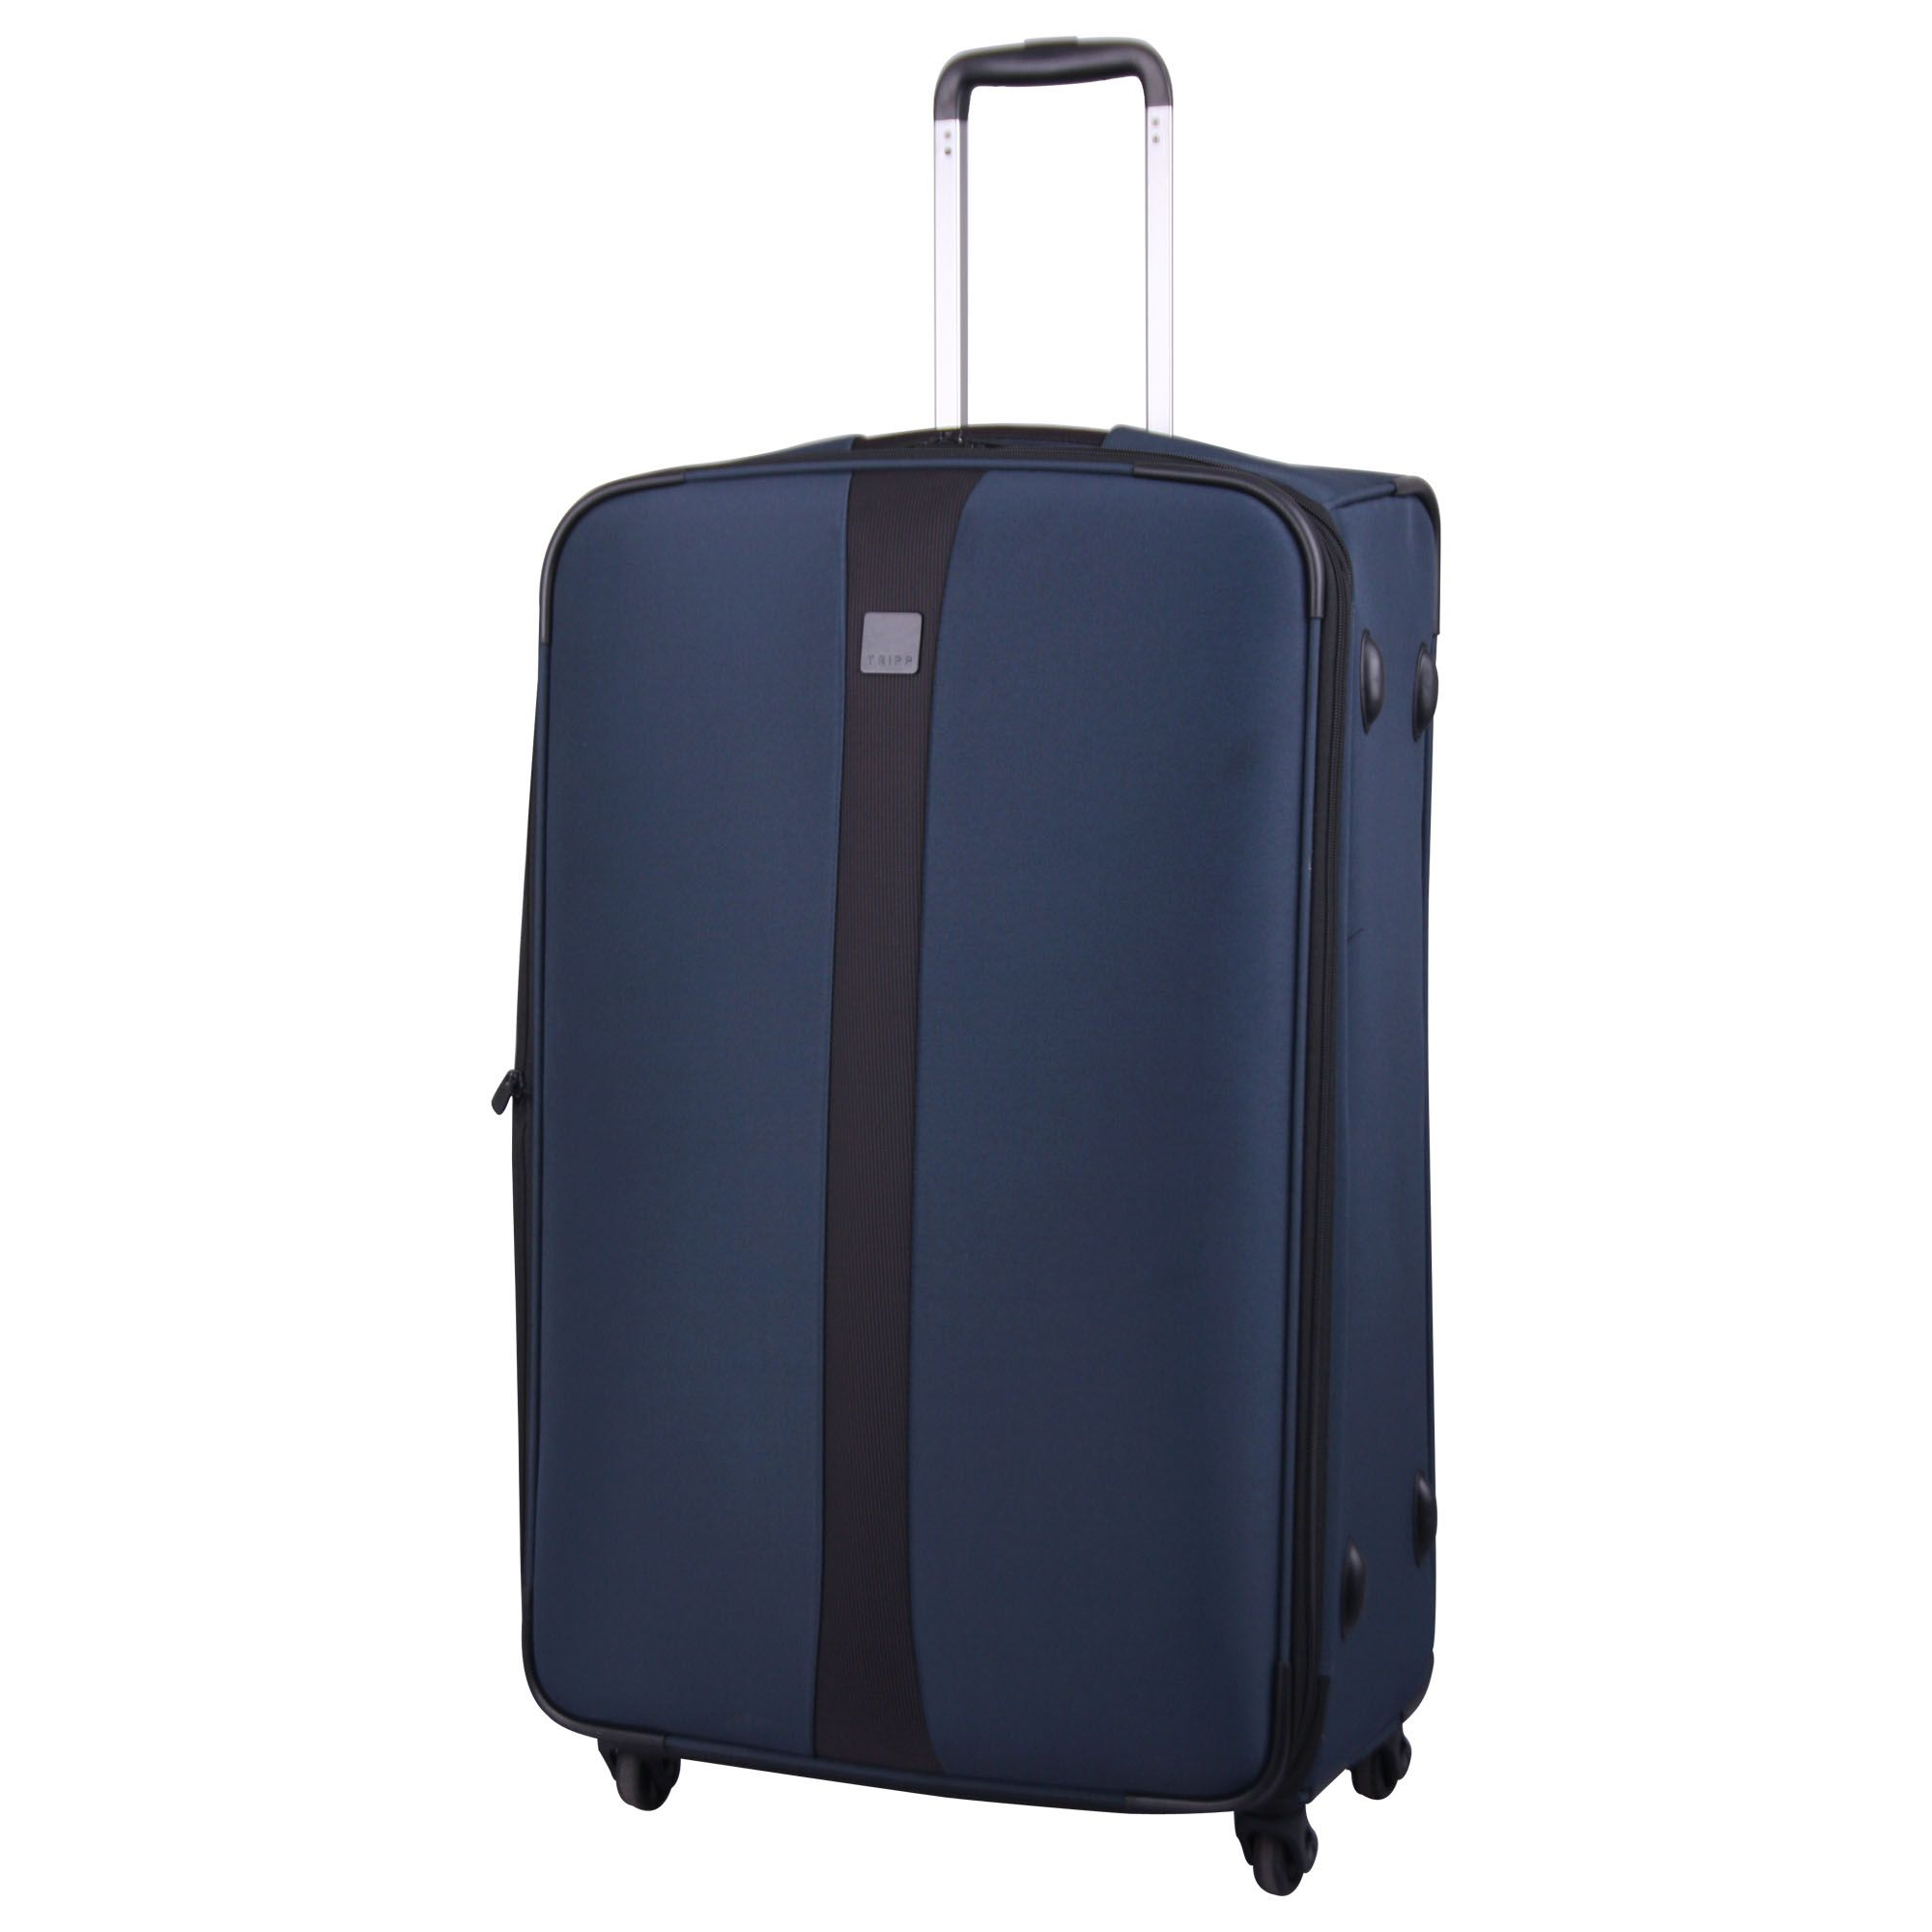 Tripp teal 'Superlite 4W' 4 wheel large suitcase - Soft Suitcases ...